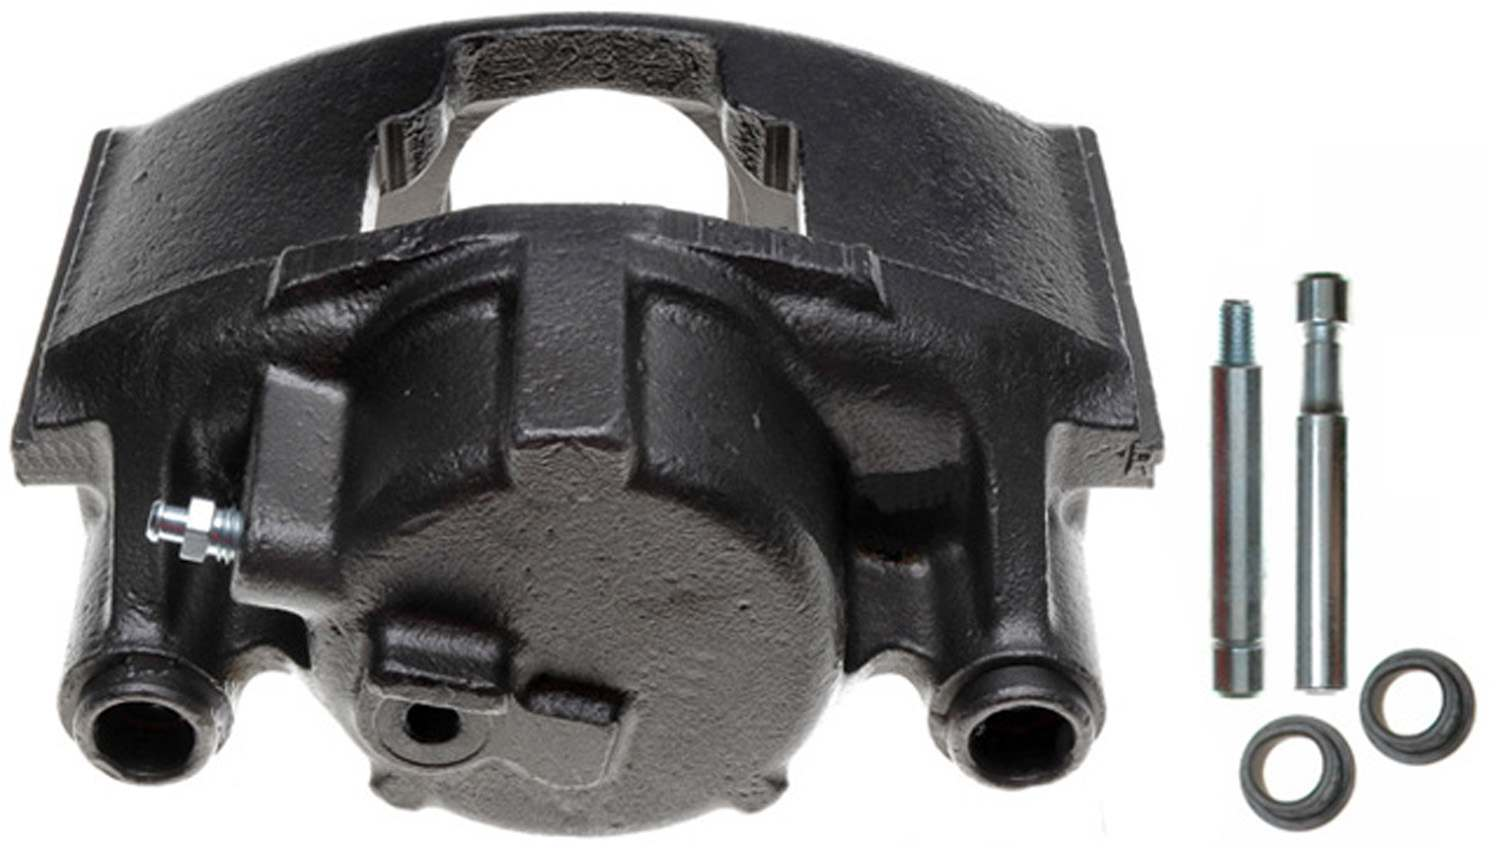 ACDELCO PROFESSIONAL BRAKES - Reman Friction Ready Non-Coated Disc Brake Caliper (Front Right) - ADU 18FR745